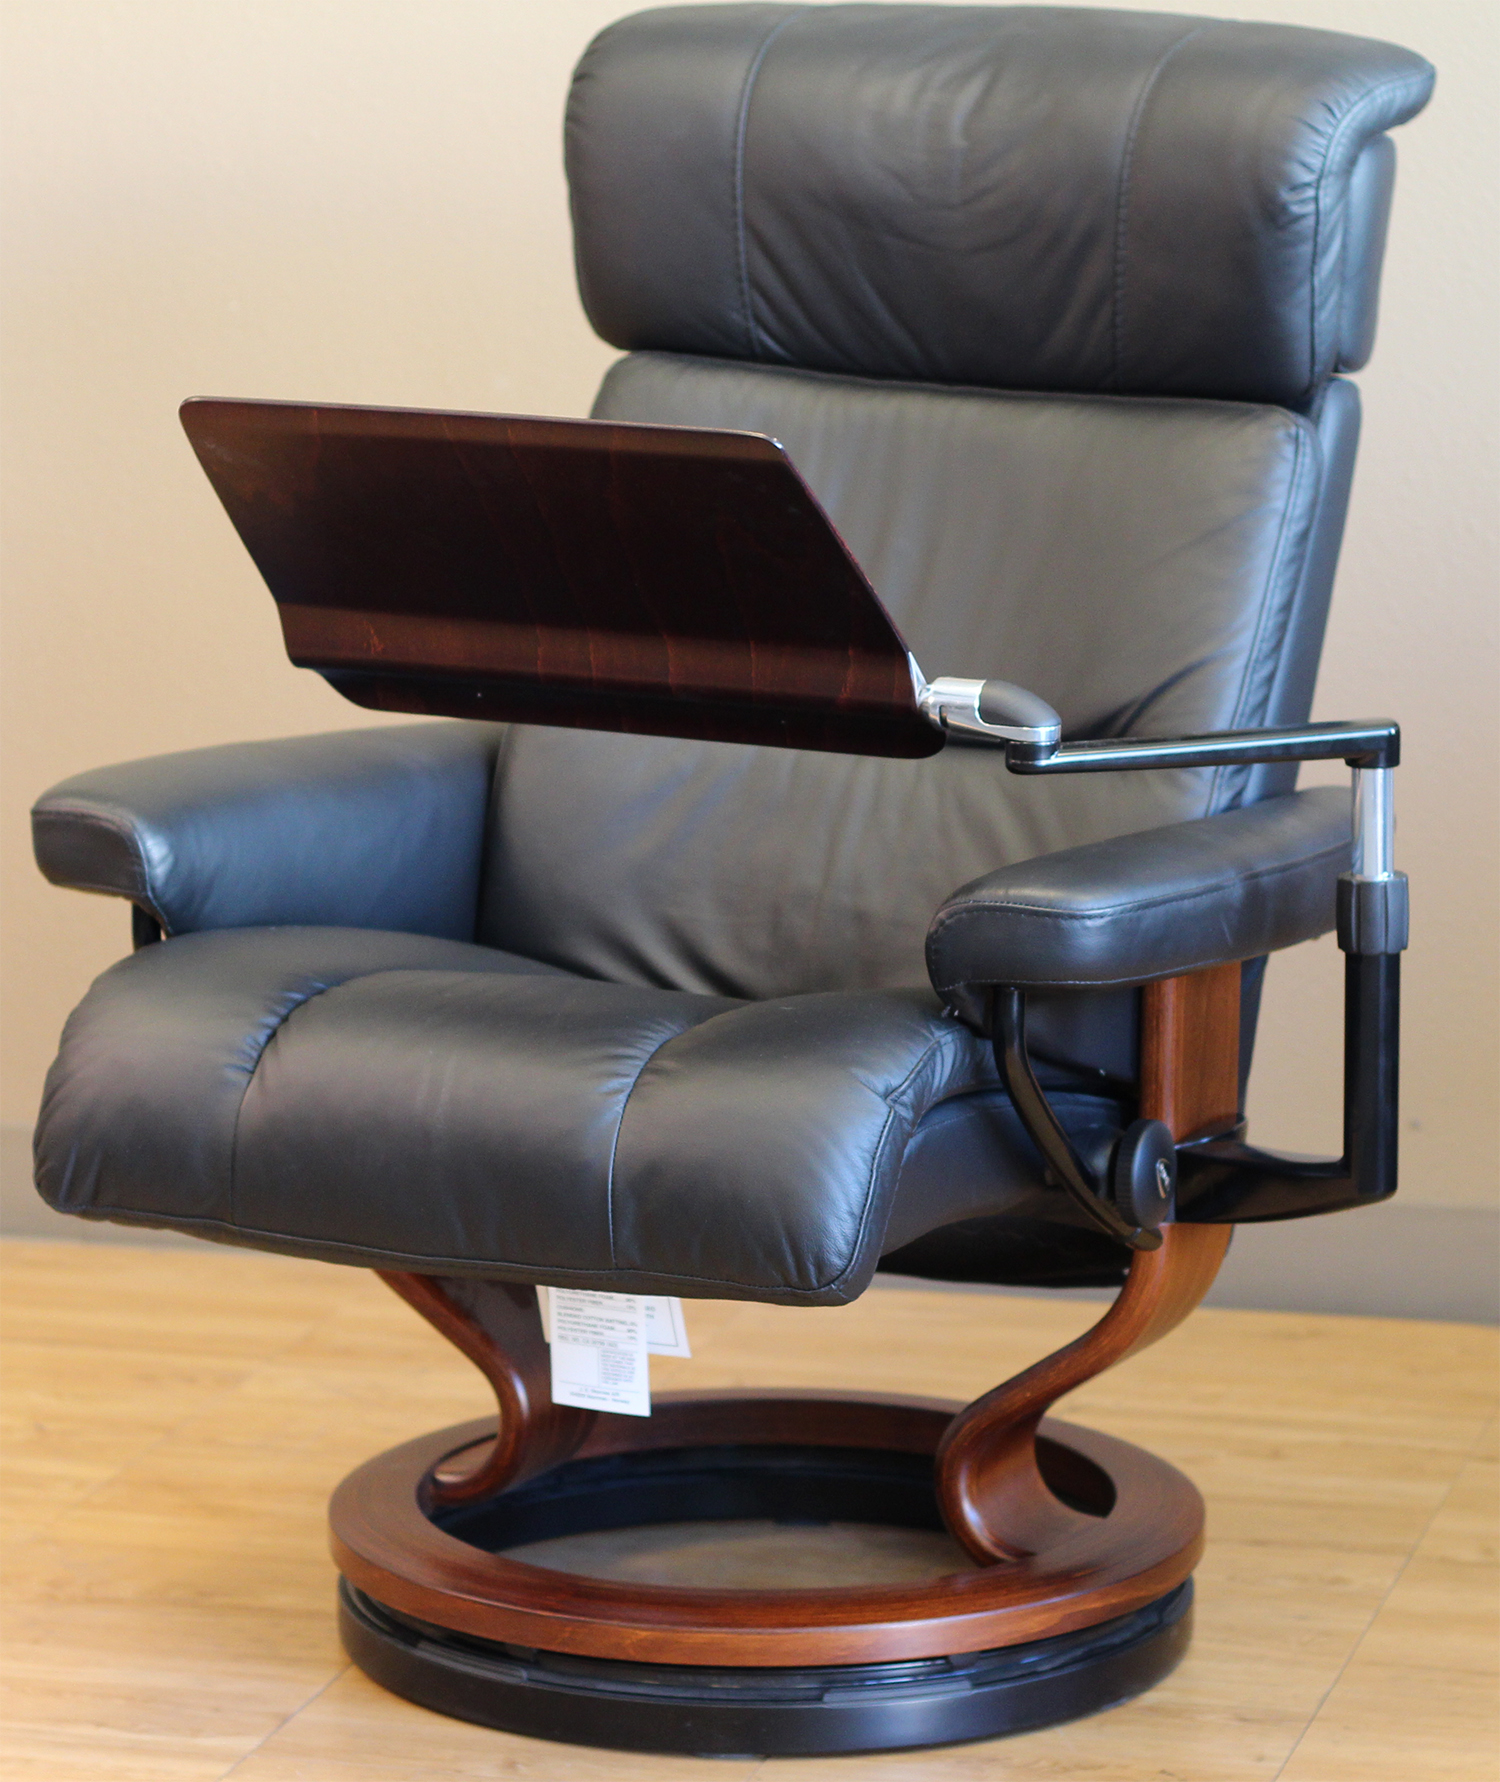 Stressless Personal Computer Table : stressless dream recliner - islam-shia.org